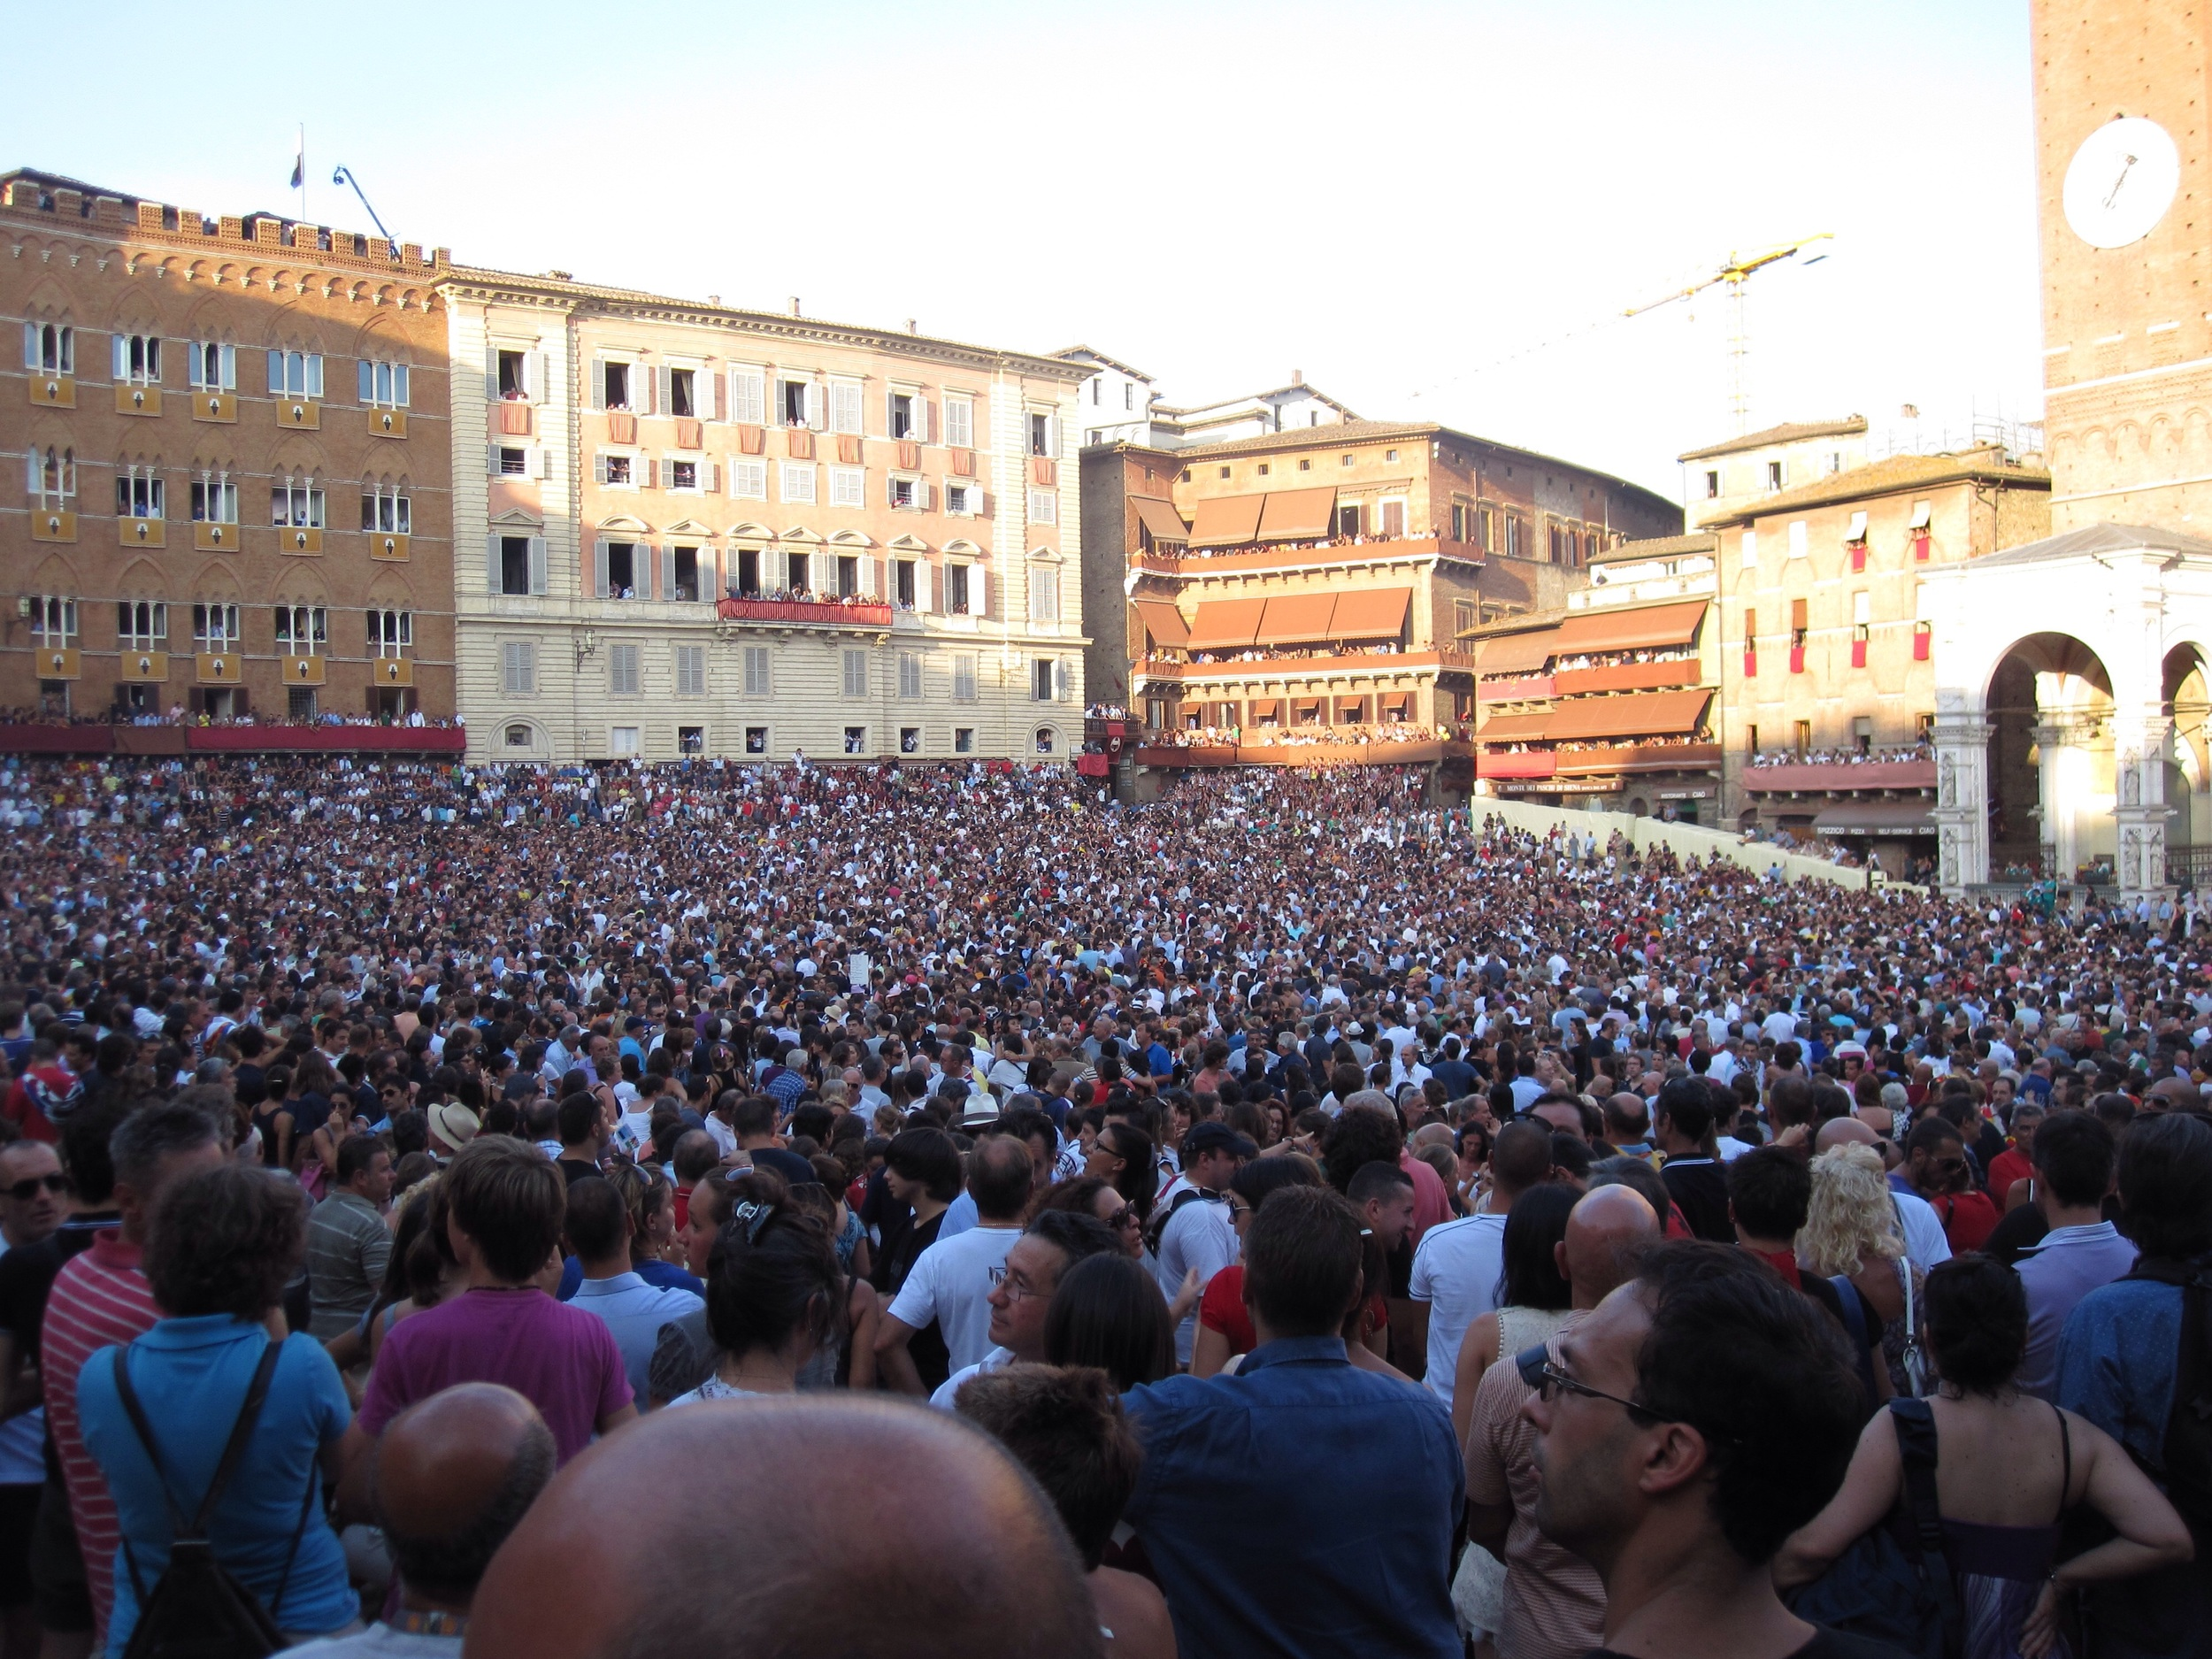 Il Campo for the 2009 Palio in Siena, my shaved head in the foreground.